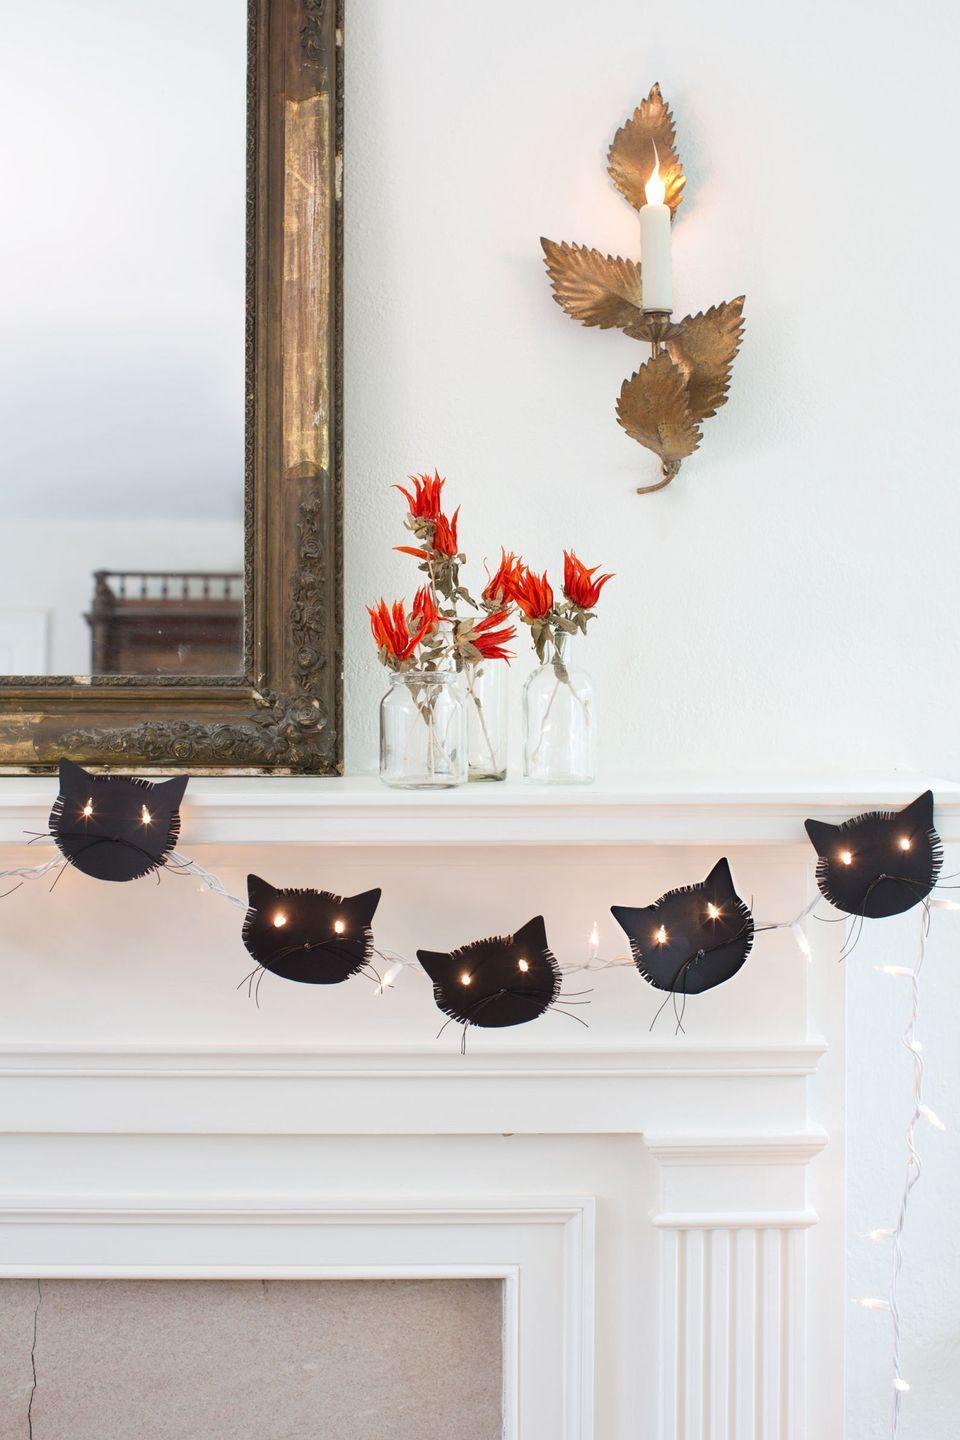 "<p>Decorate your home for fall by adding flair, like a cute Halloween garland, to your mantel. </p><p><strong><a href=""https://www.countryliving.com/home-design/decorating-ideas/g1936/halloween-mantel-ideas/"" rel=""nofollow noopener"" target=""_blank"" data-ylk=""slk:Get the tutorial"" class=""link rapid-noclick-resp"">Get the tutorial</a>.</strong></p>"